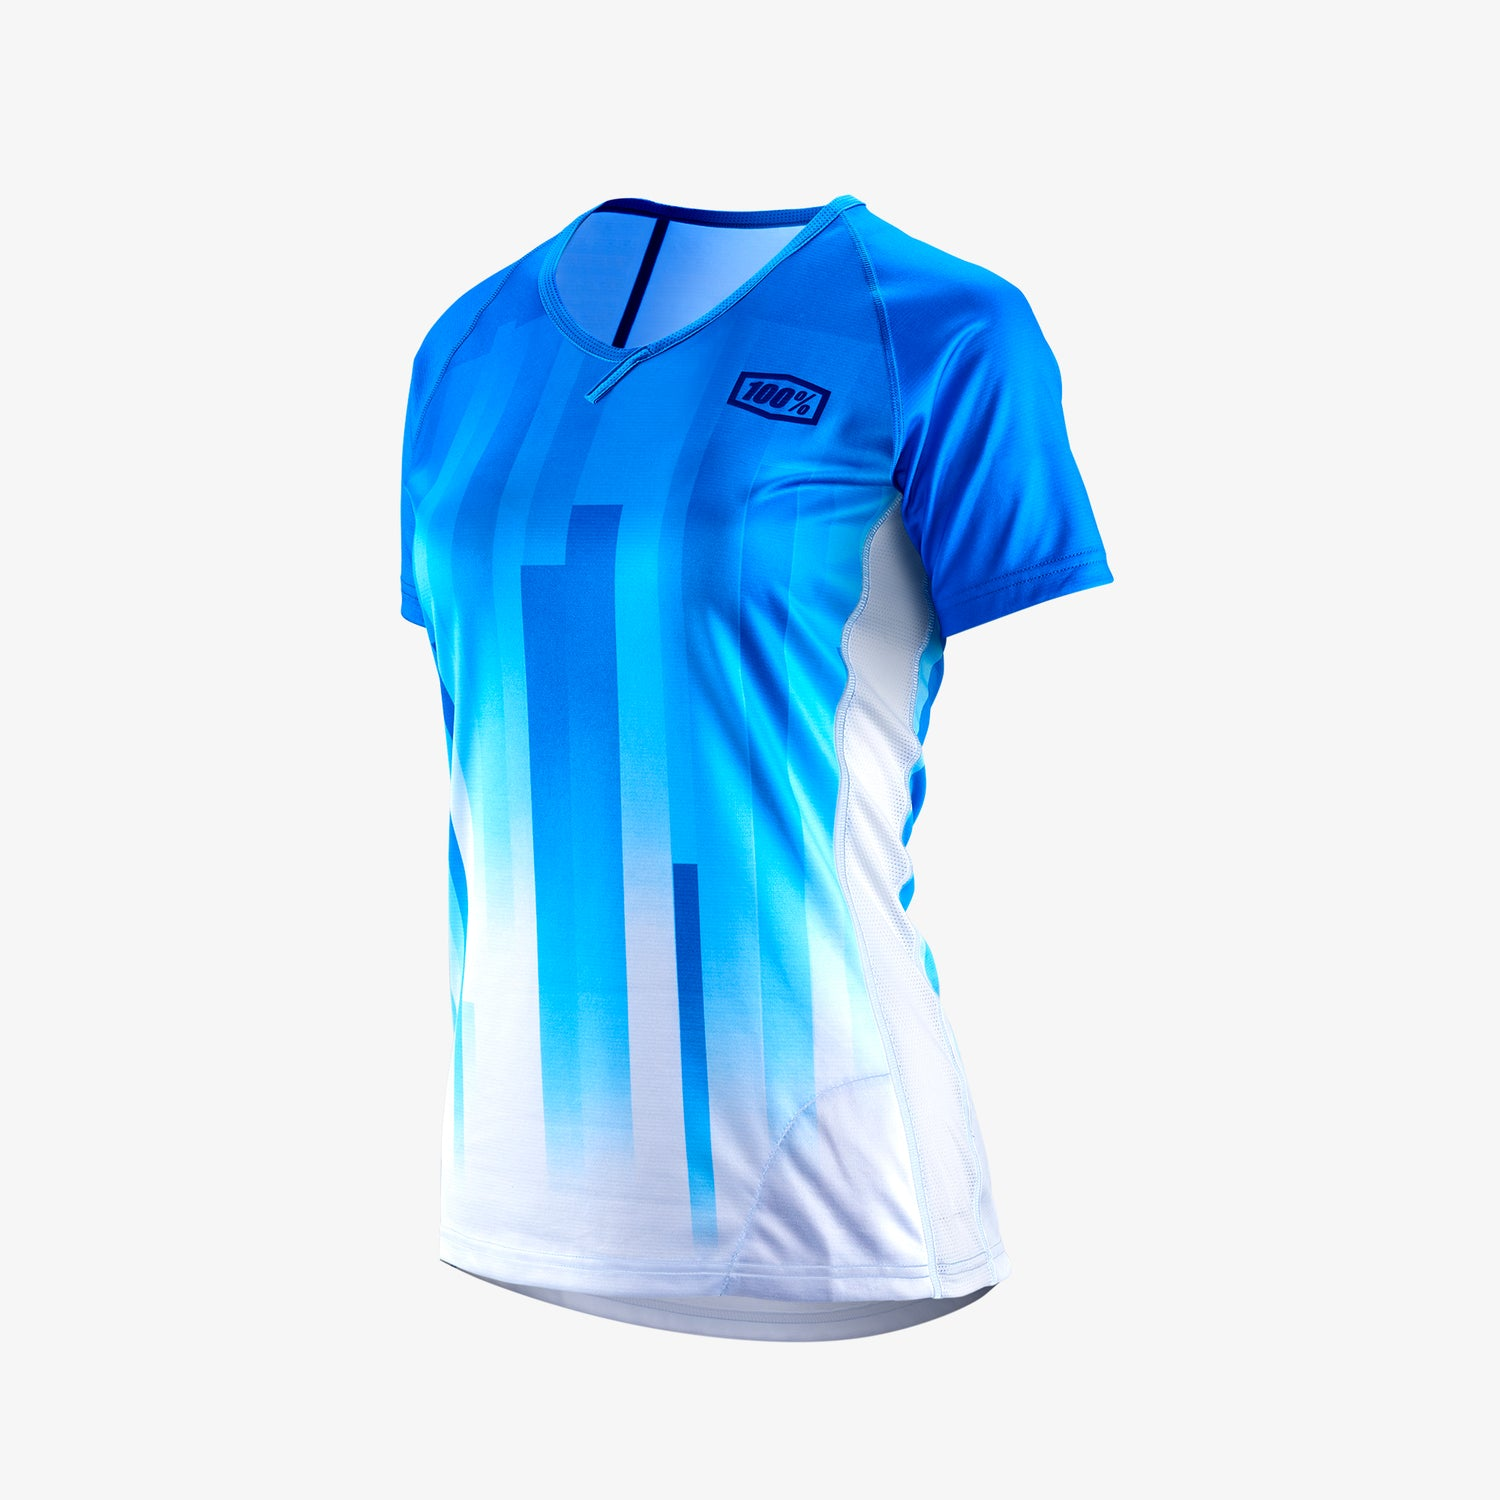 AIRMATIC Jersey - Women's - Blue